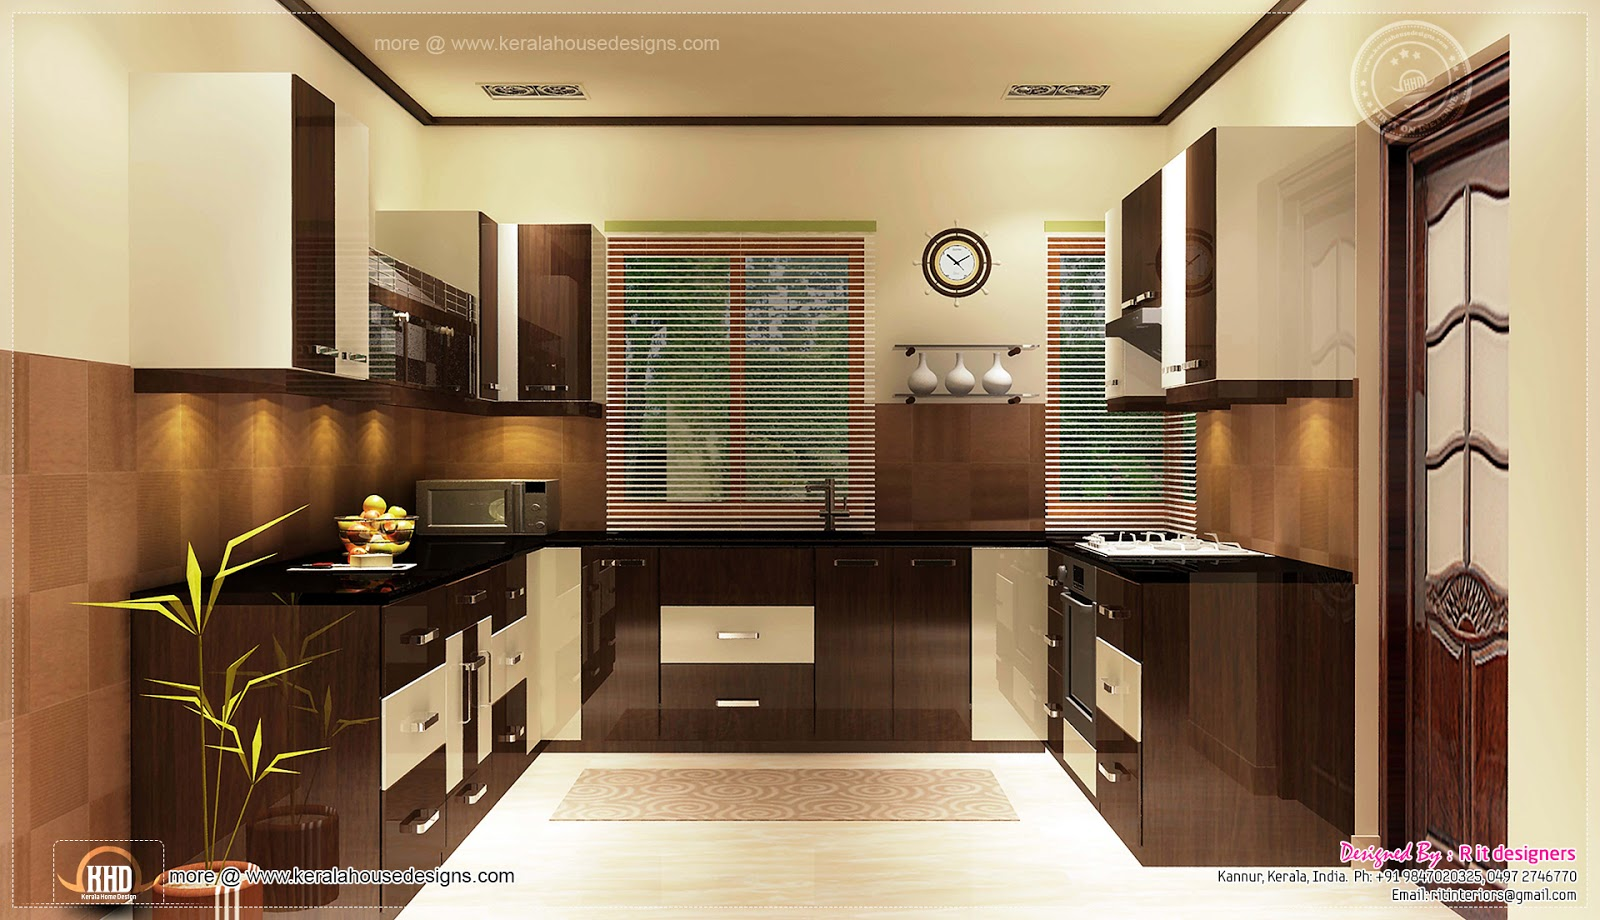 Home interior designs by rit designers kerala home for Design house decor